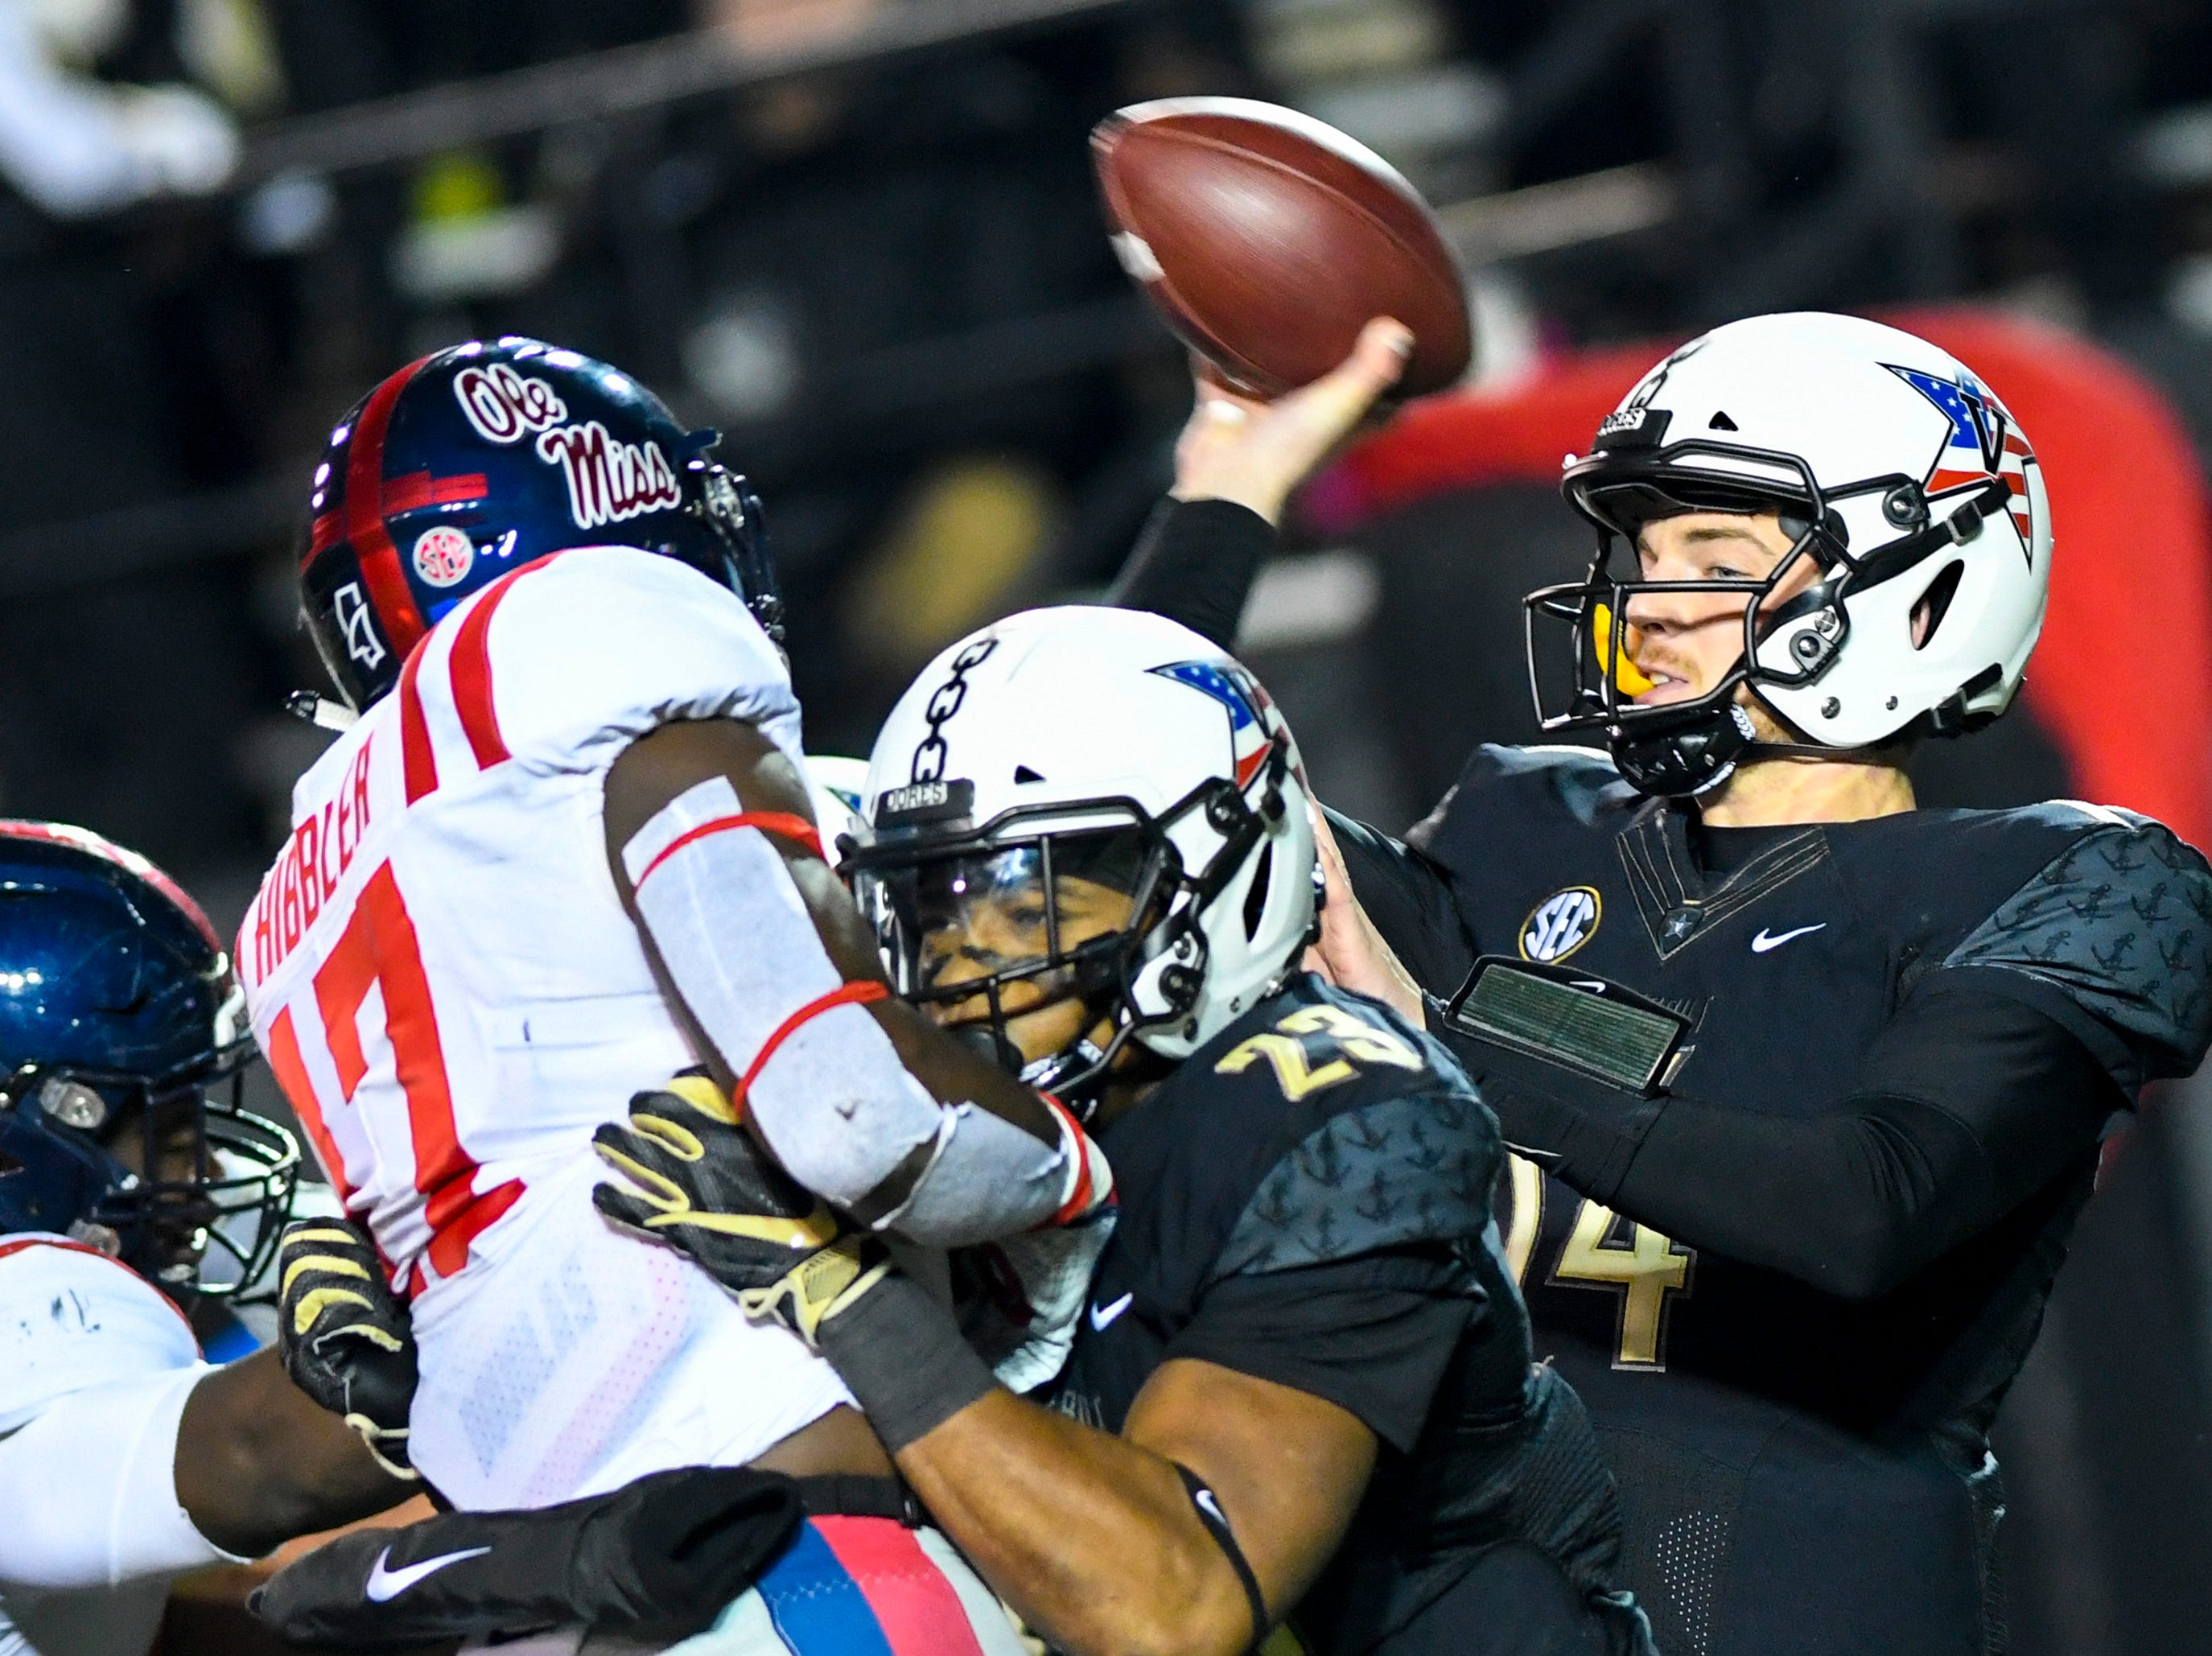 Vanderbilt quarterback Kyle Shurmur (14) passes through traffic during Vanderbilt's game against Ole Miss at Vanderbilt Stadium in Nashville on Saturday, Nov. 17, 2018.